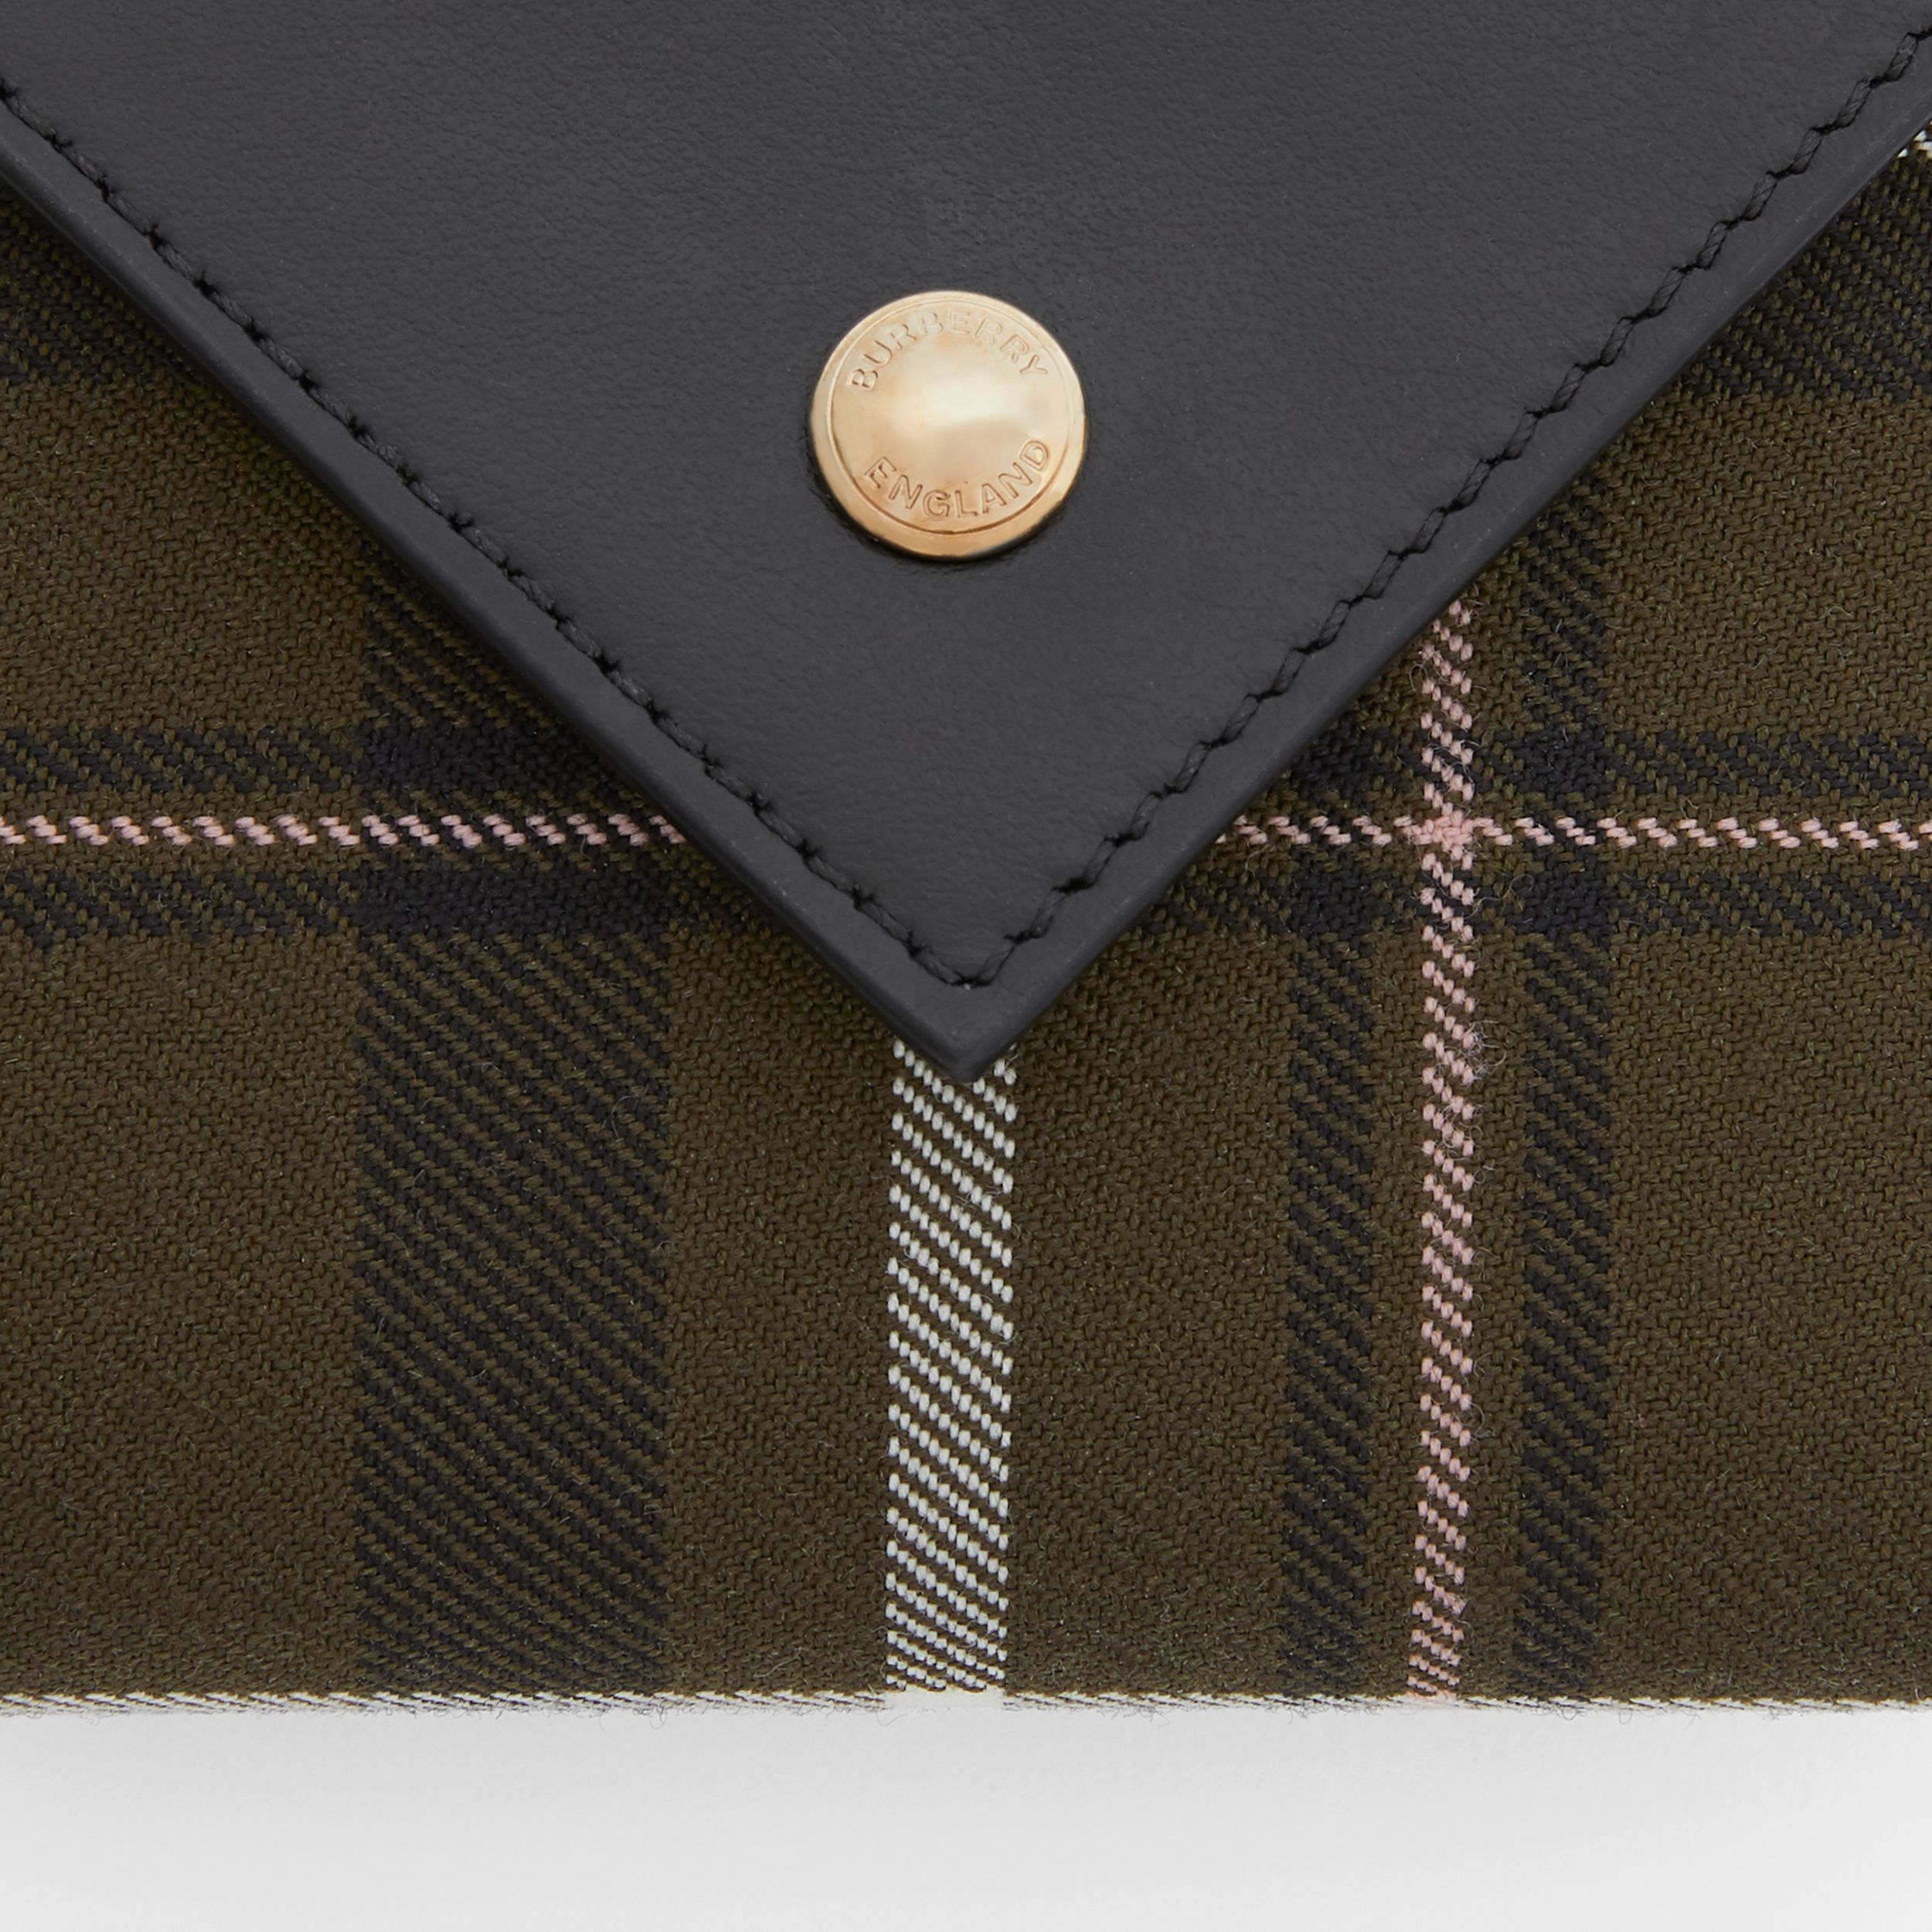 Tartan Wool and Leather Folding Wallet in Dark Green - Women | Burberry Hong Kong S.A.R. - 2